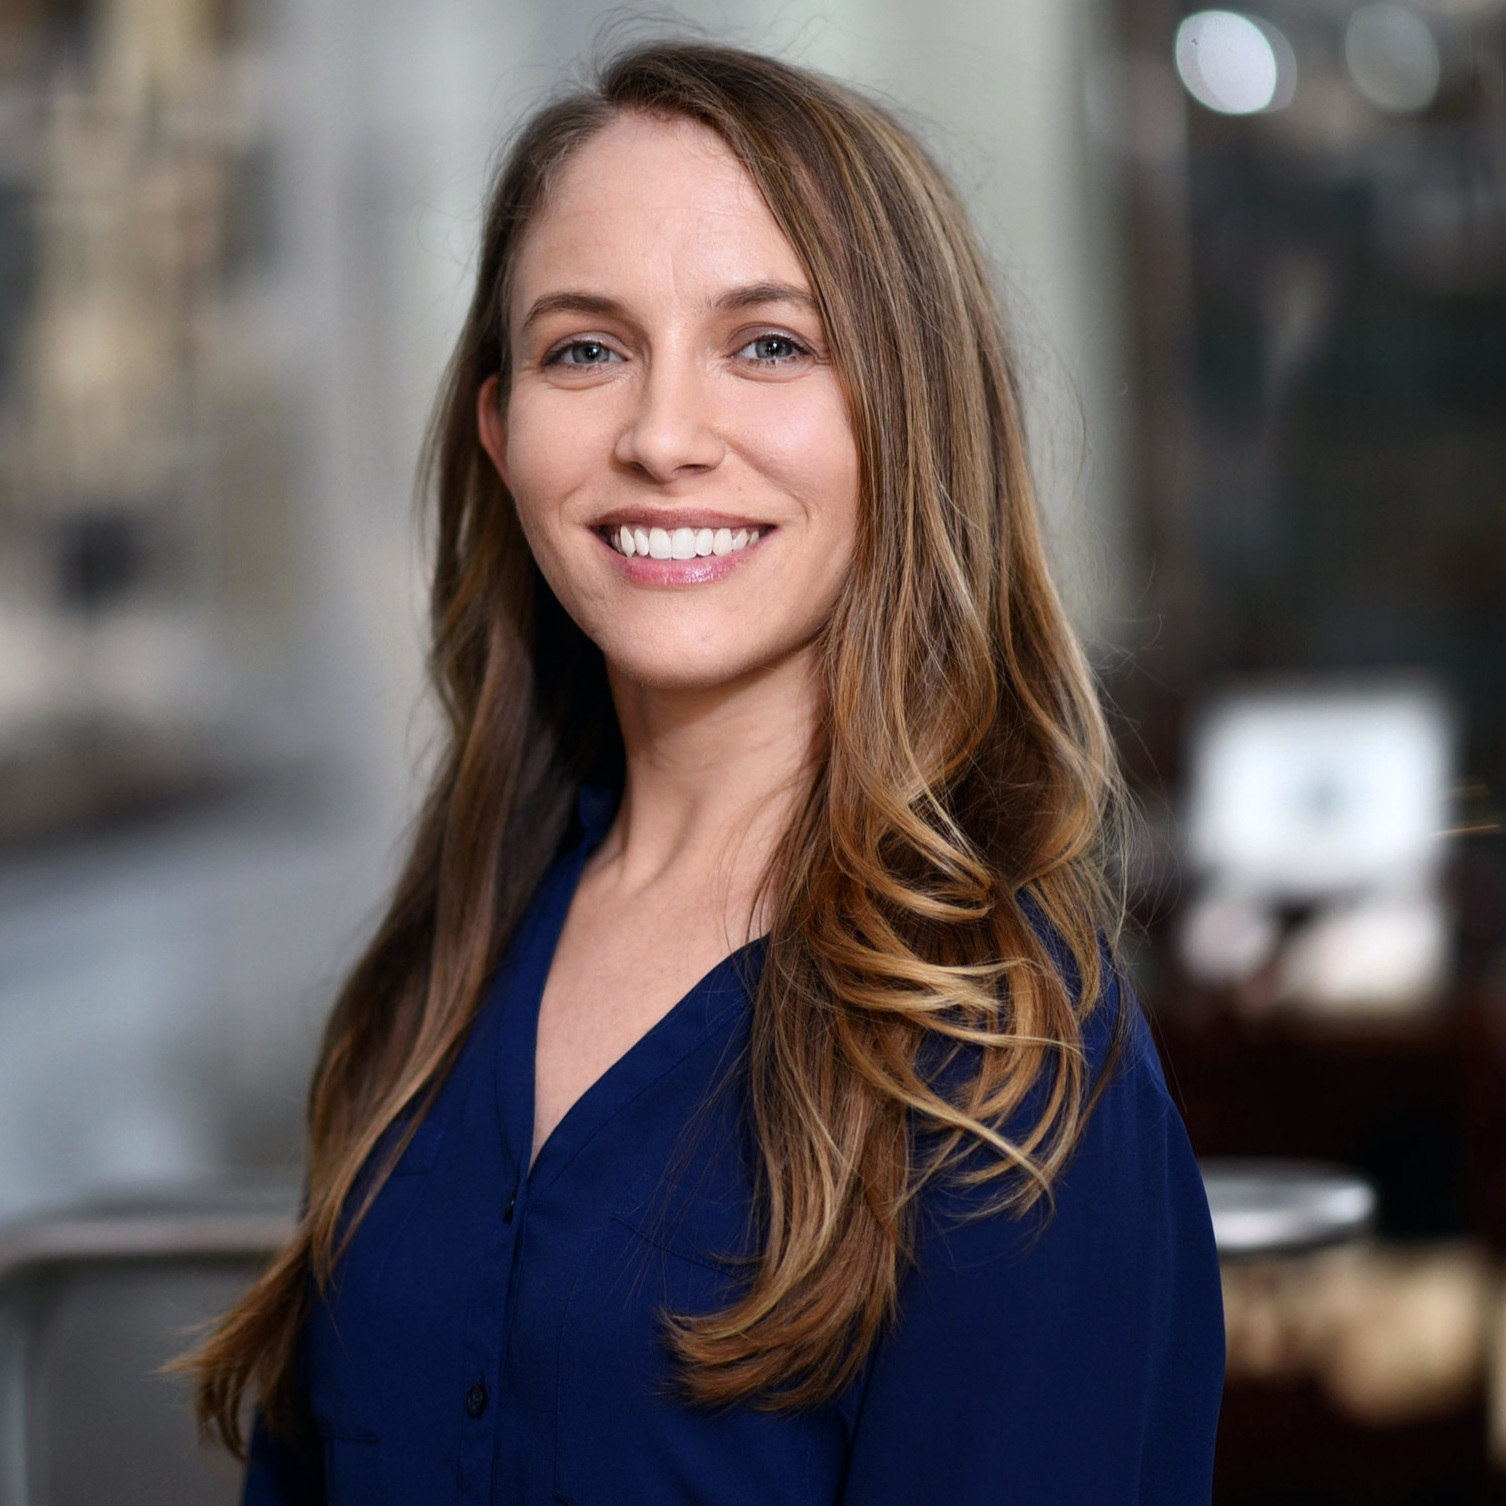 Eva Clark   President and Co-Founder   Eva received her MD and PhD from the University of Alabama School of Medicine in Birmingham, AL in 2013. She is currently and Infectious Diseases specialist working in Houston, Texas.  eva.clark@kuskaperu.org